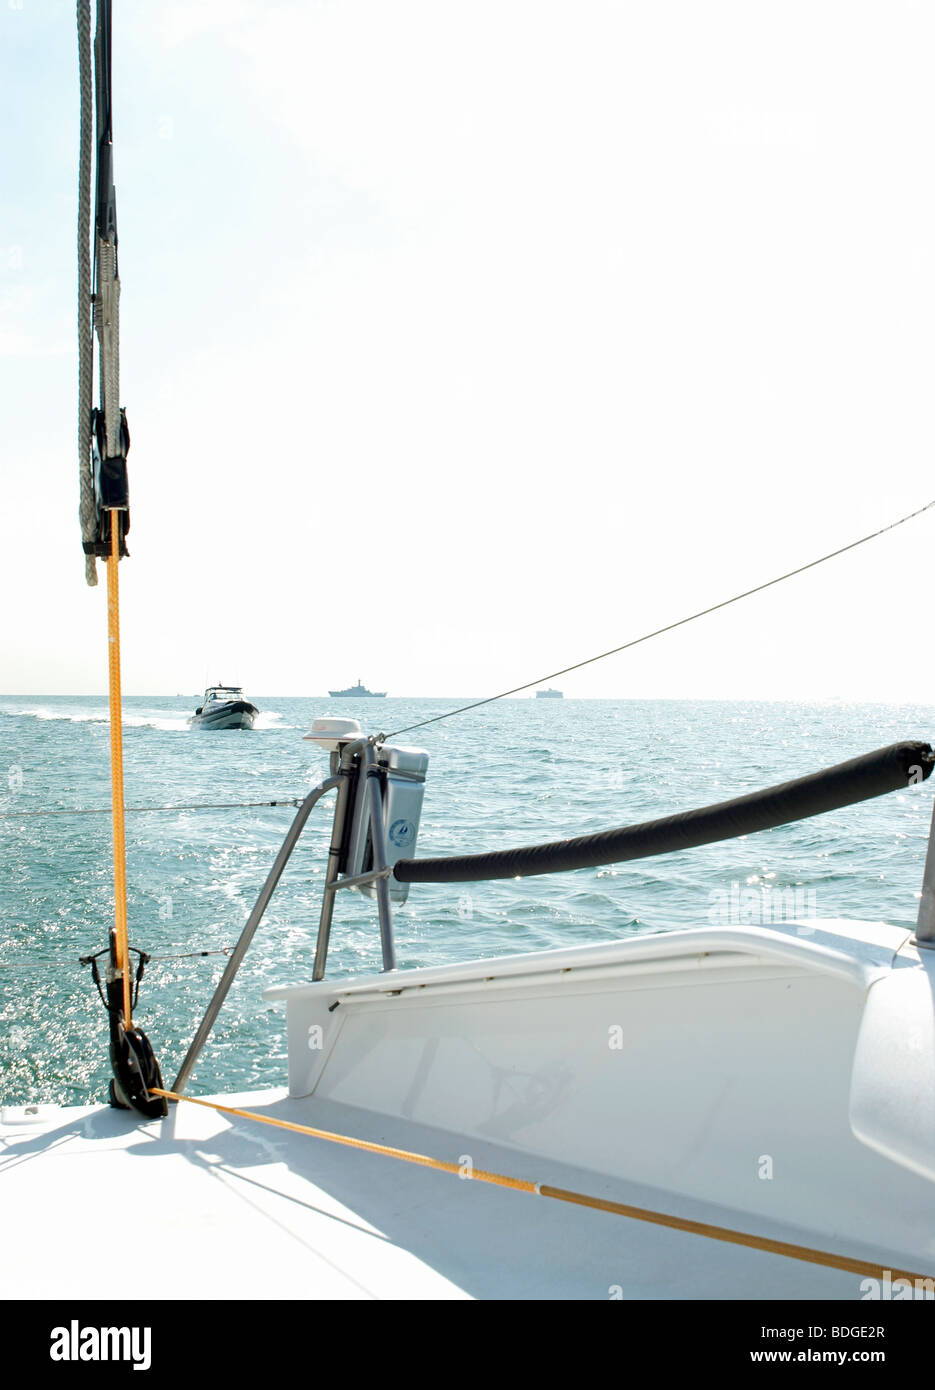 rope pulley on sailing boat - Stock Image